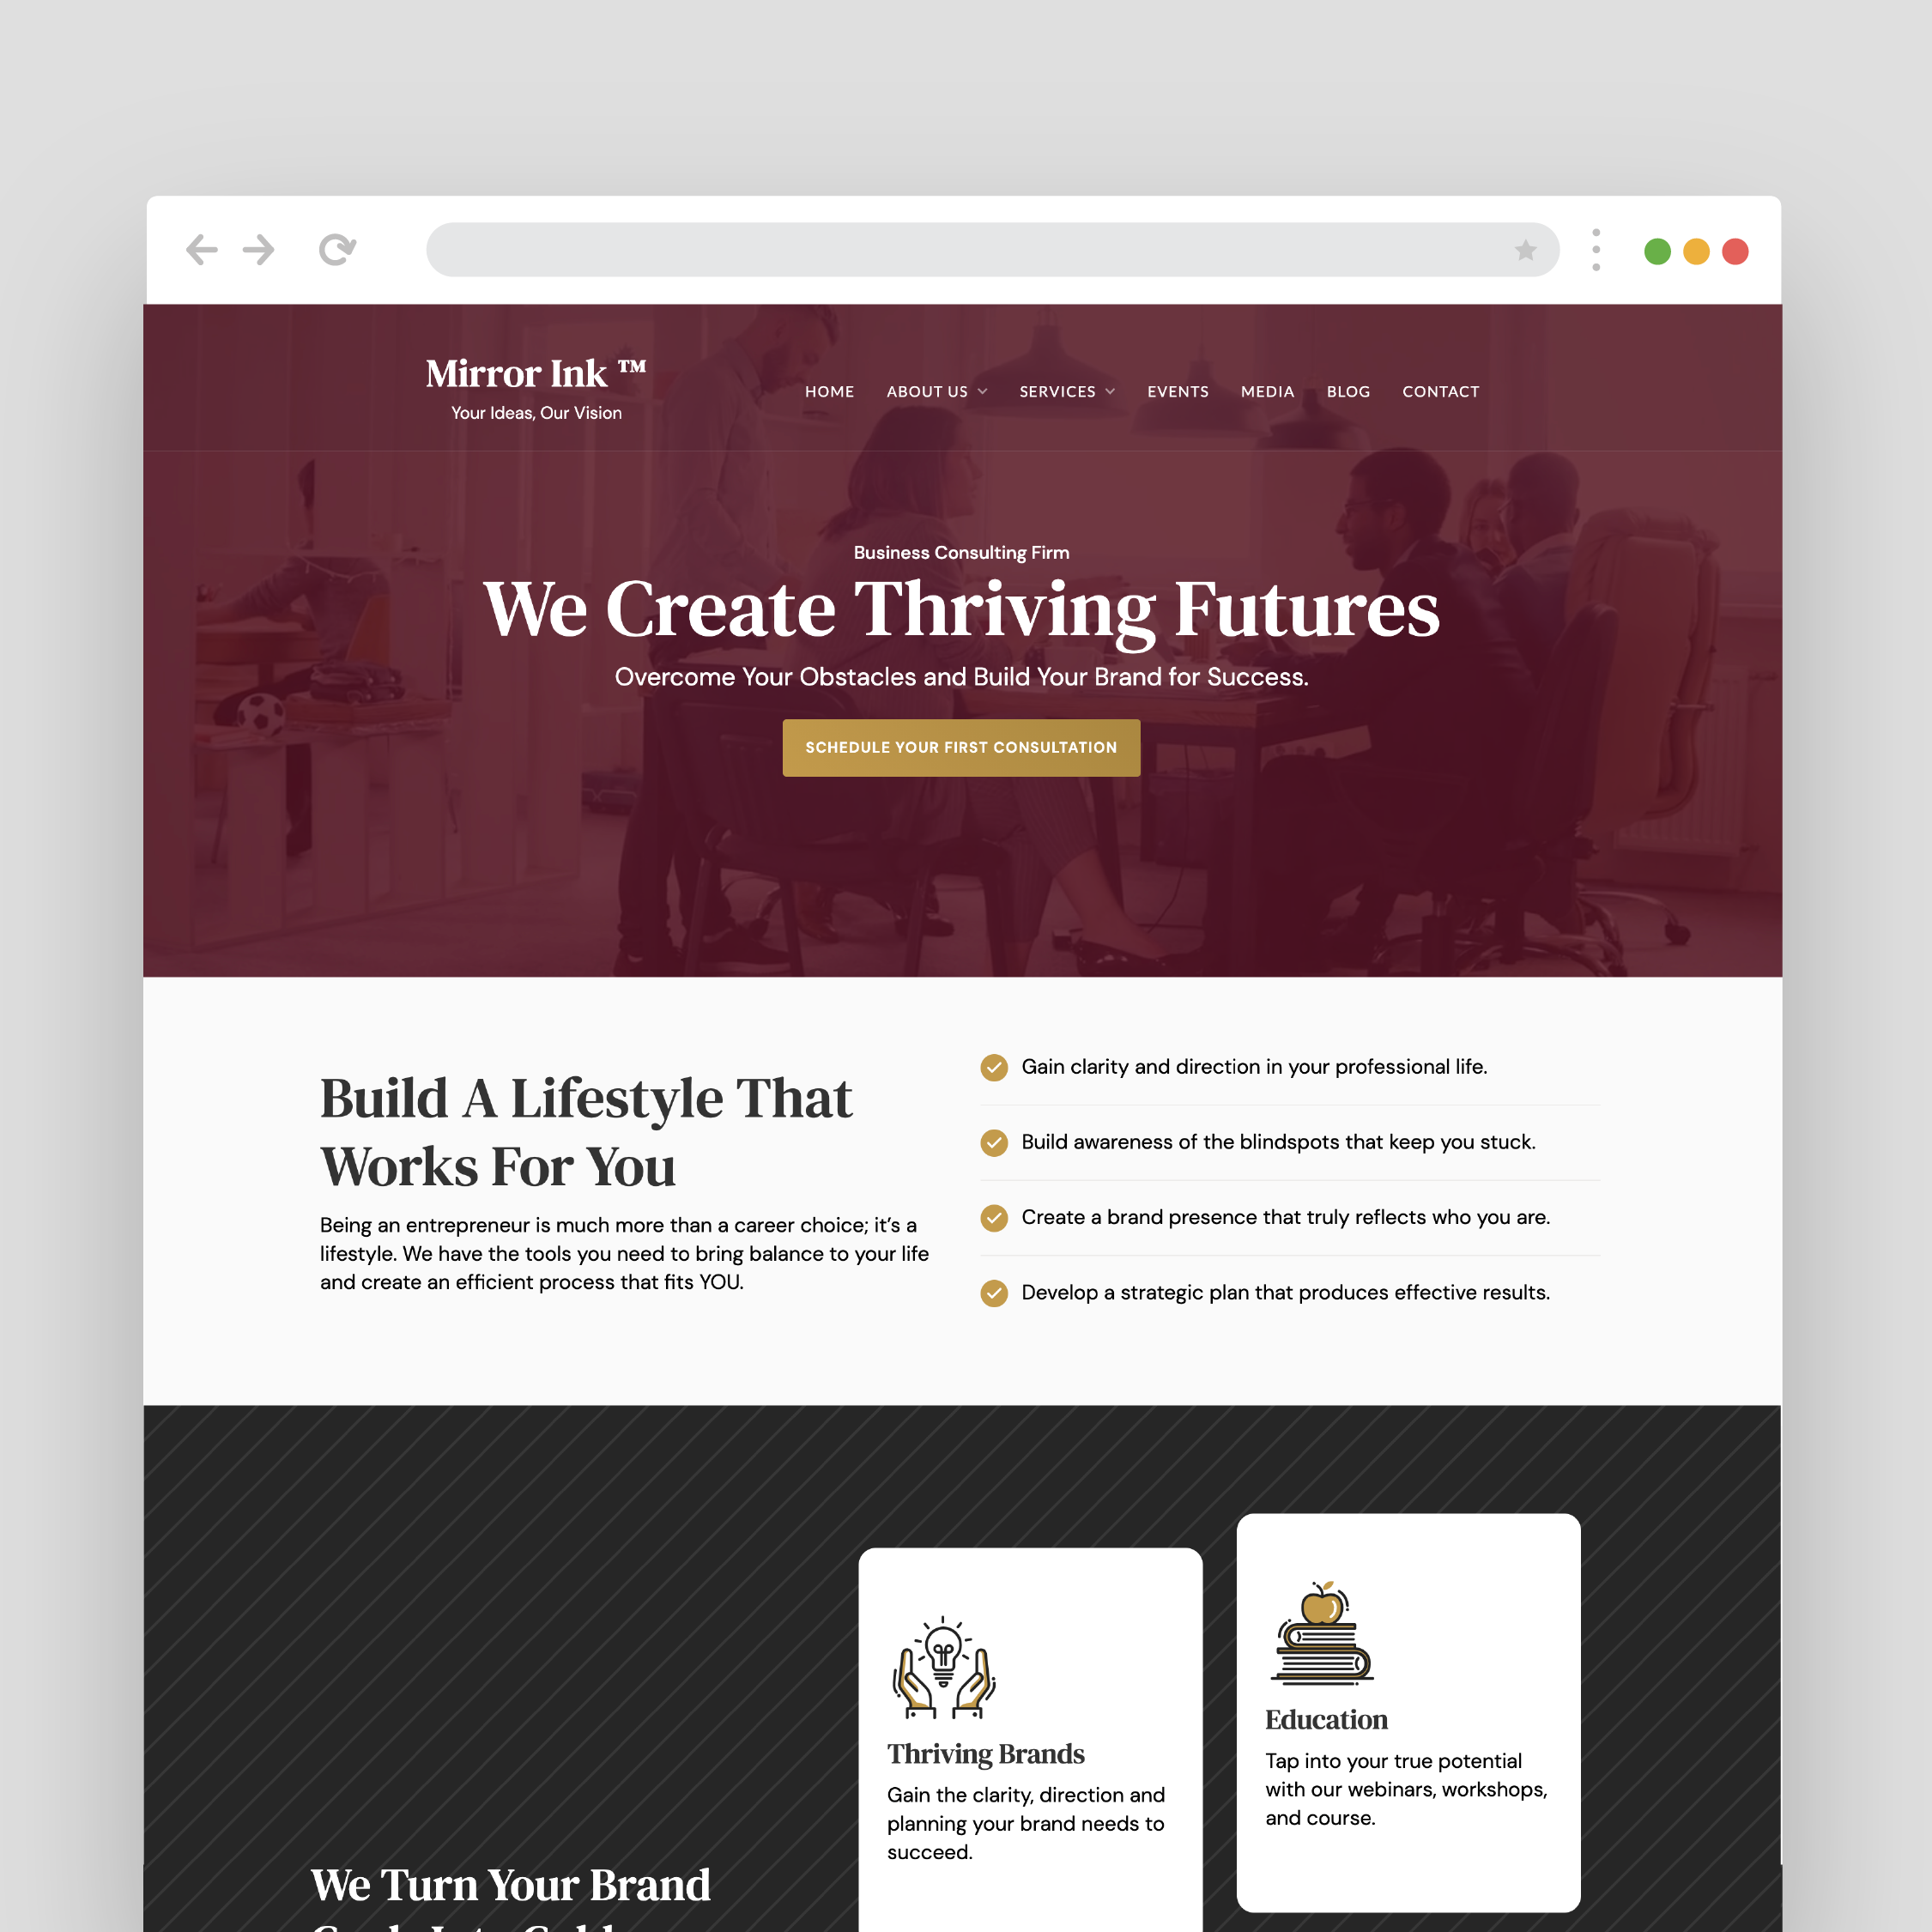 Website created for Mirror Ink by VZNCY